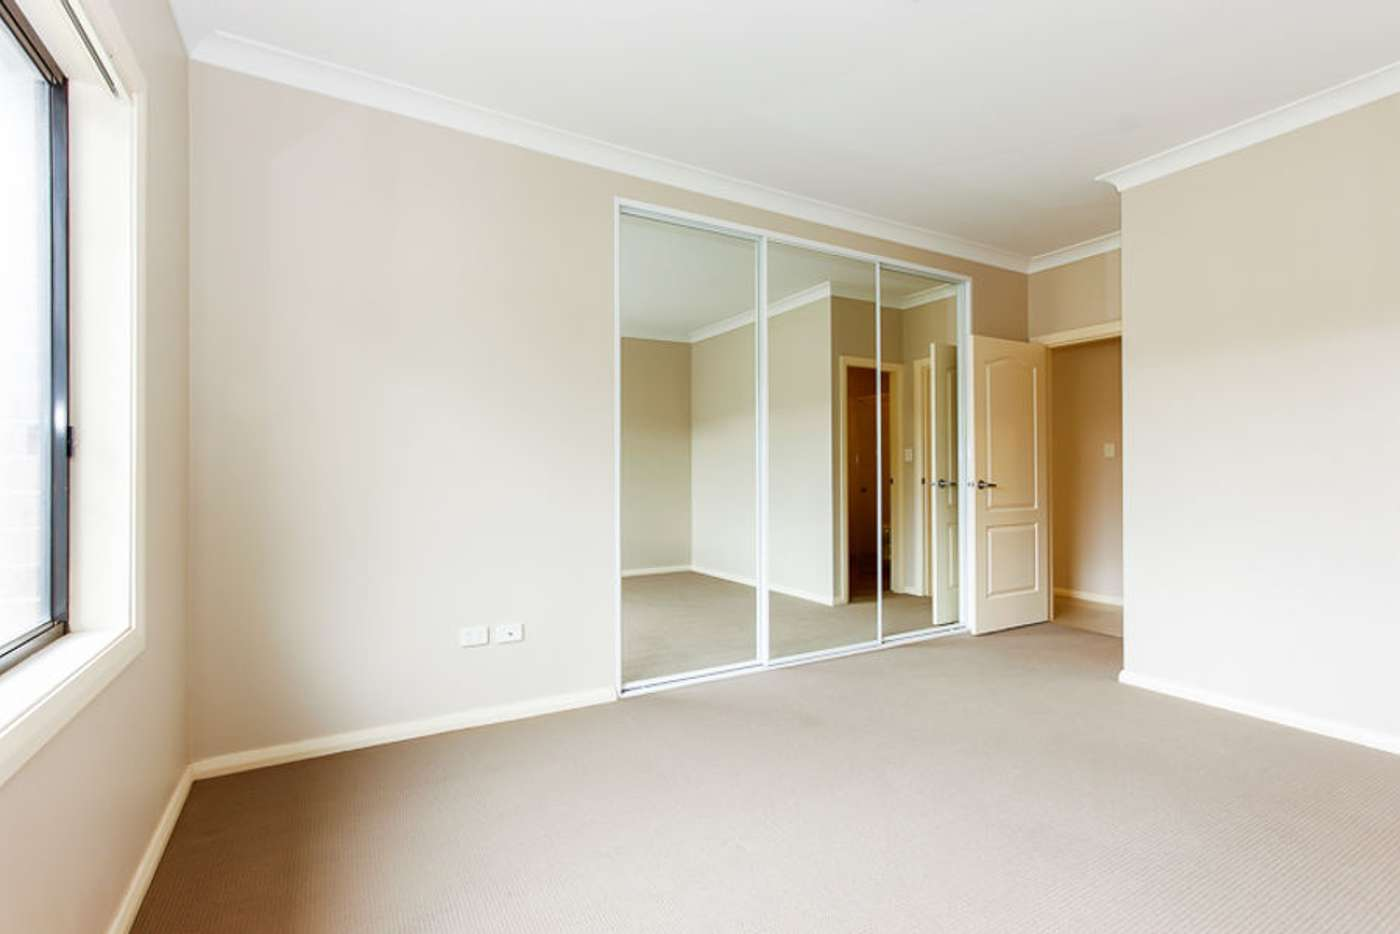 Sixth view of Homely villa listing, 4/6-8 Beattie Avenue, Denistone East NSW 2112